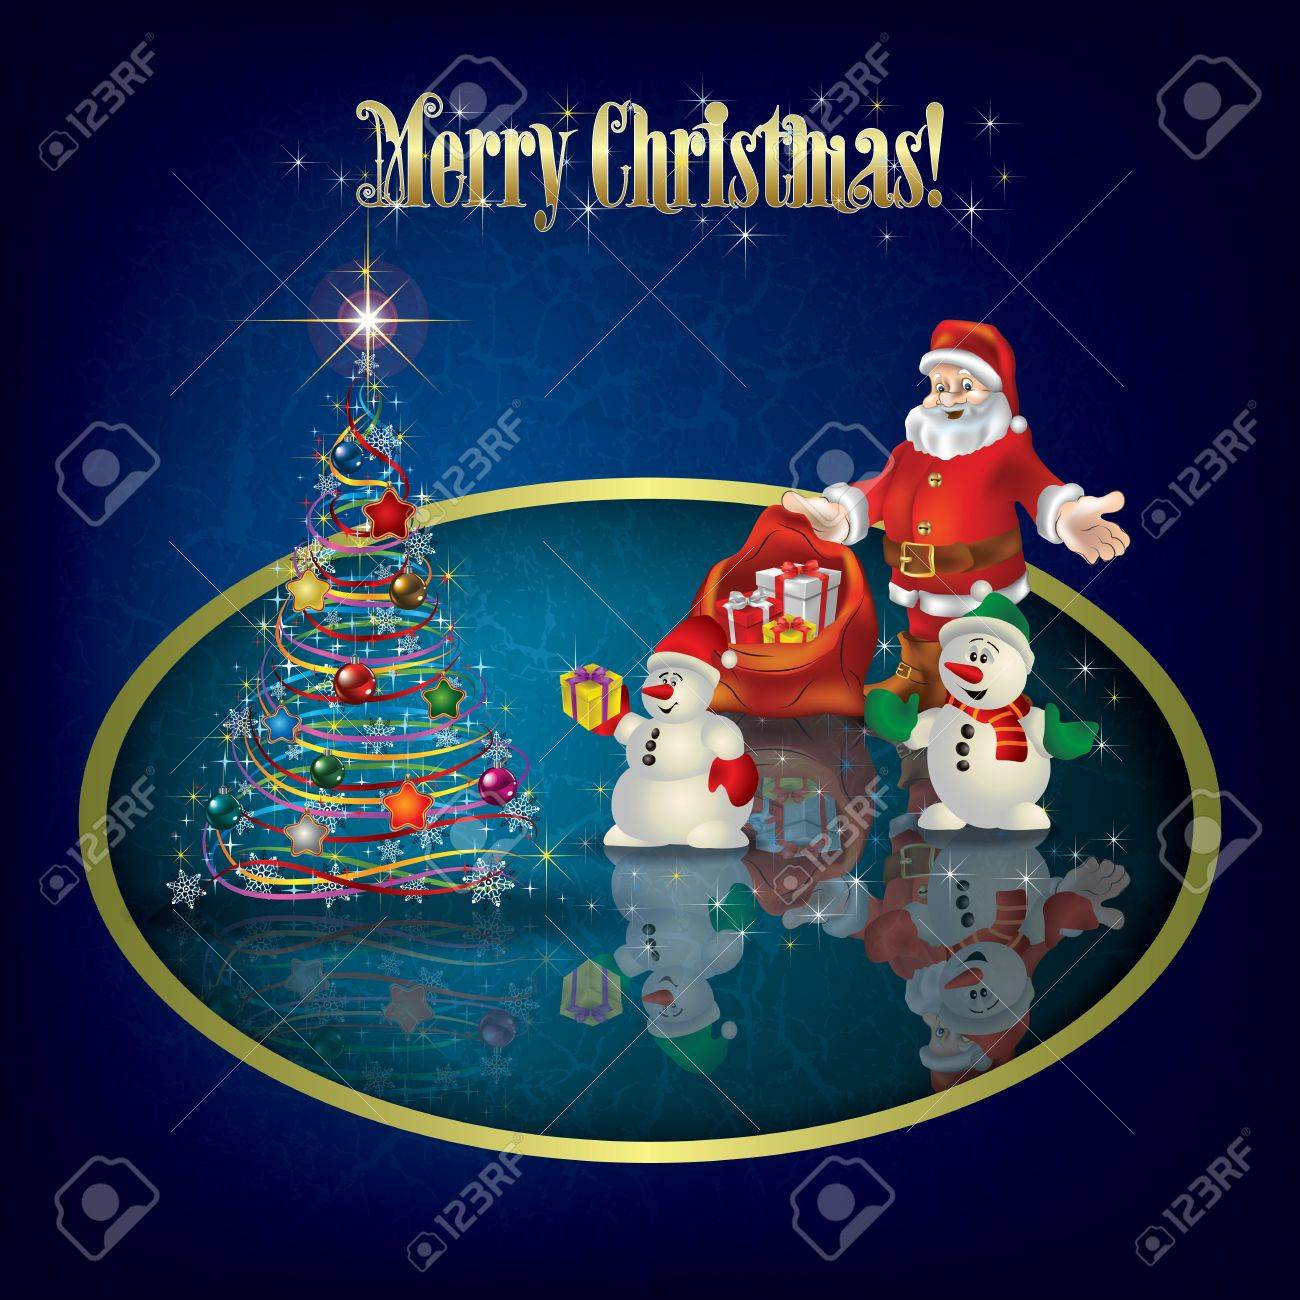 Christmas grunge greeting with Santa Claus and snowmen Stock Vector - 16189267